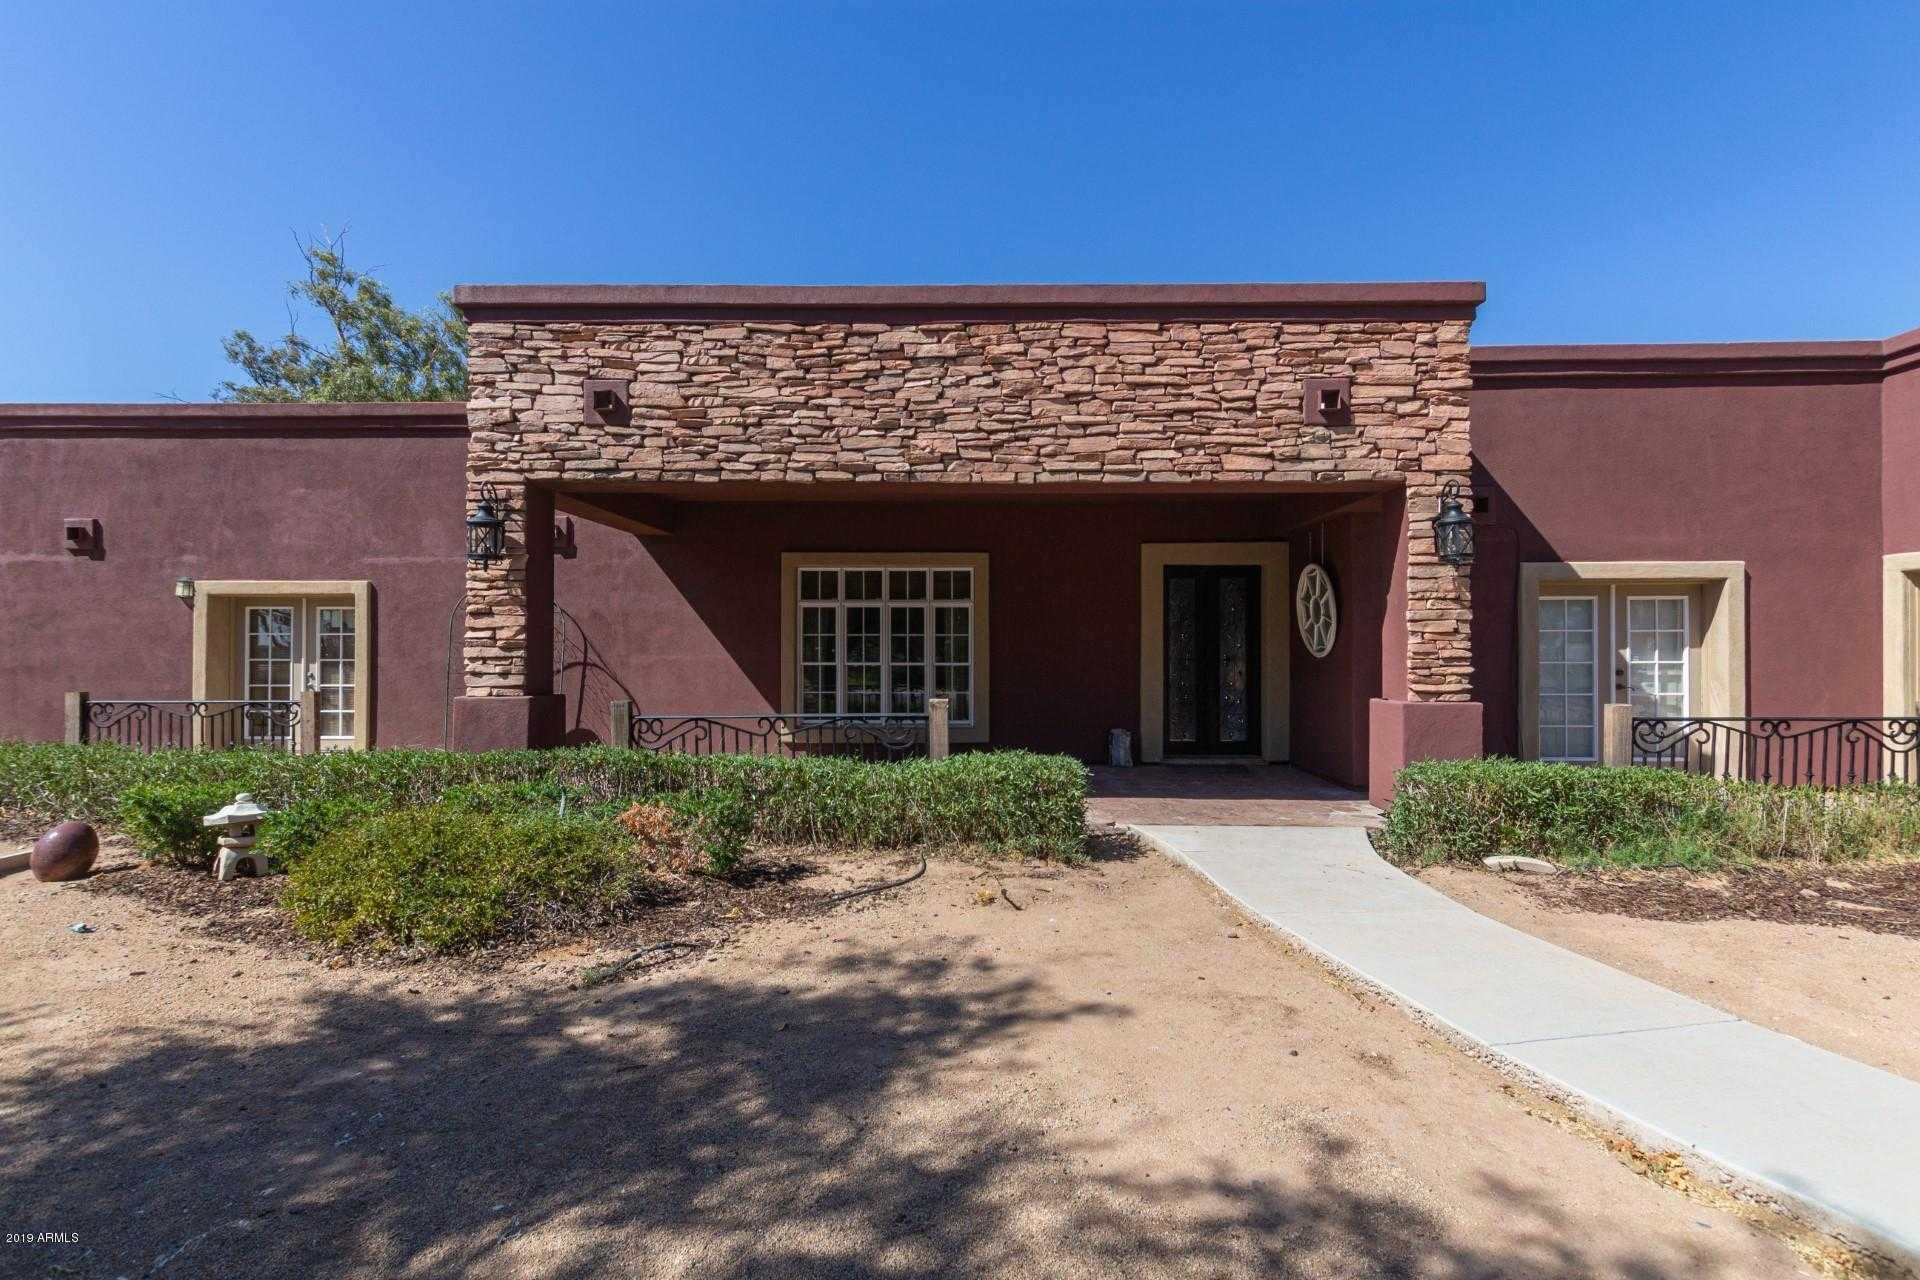 $607,500 - 5Br/4Ba - Home for Sale in Pendergast West Amended, Glendale